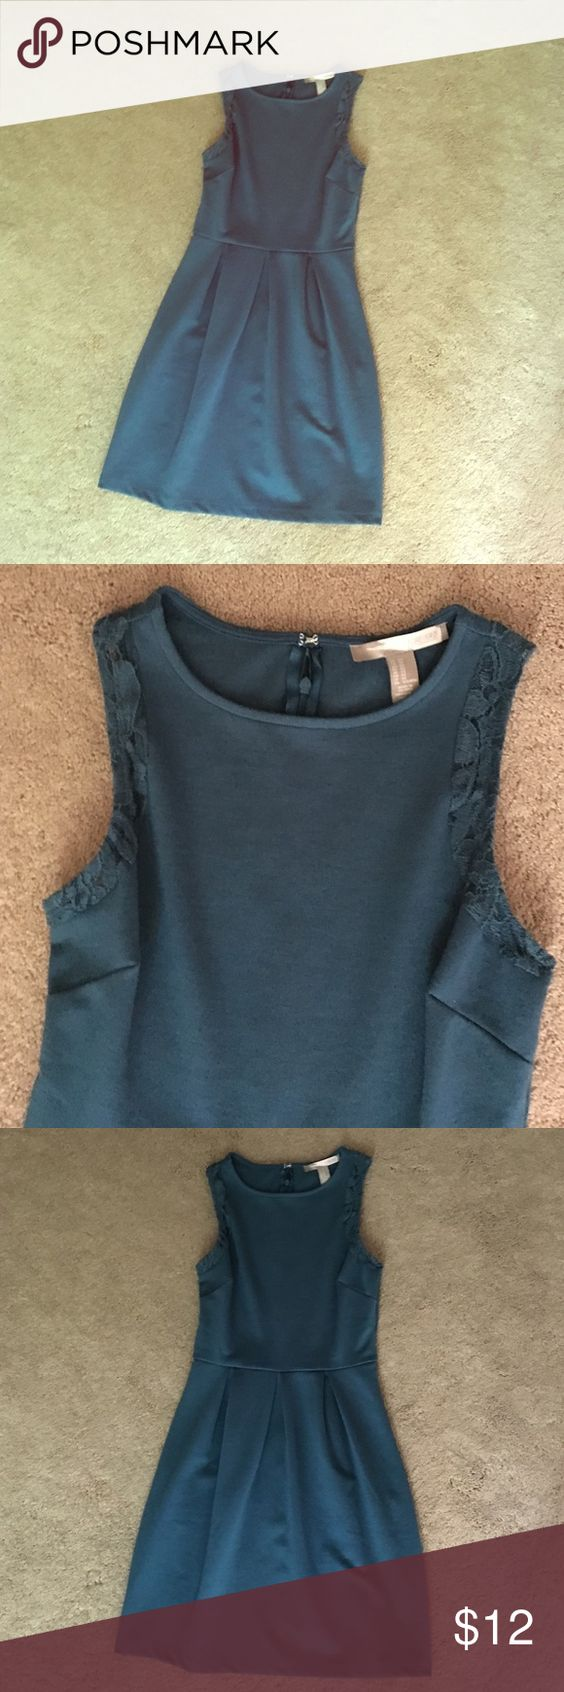 Never worn Forever 21 teal dress A tank top dress, tight on top with a straight, looser skirt. Some lace around the arm holes, zipper and hook on the back. Thicker, nice material, great for dressing up or down! Forever 21 Dresses